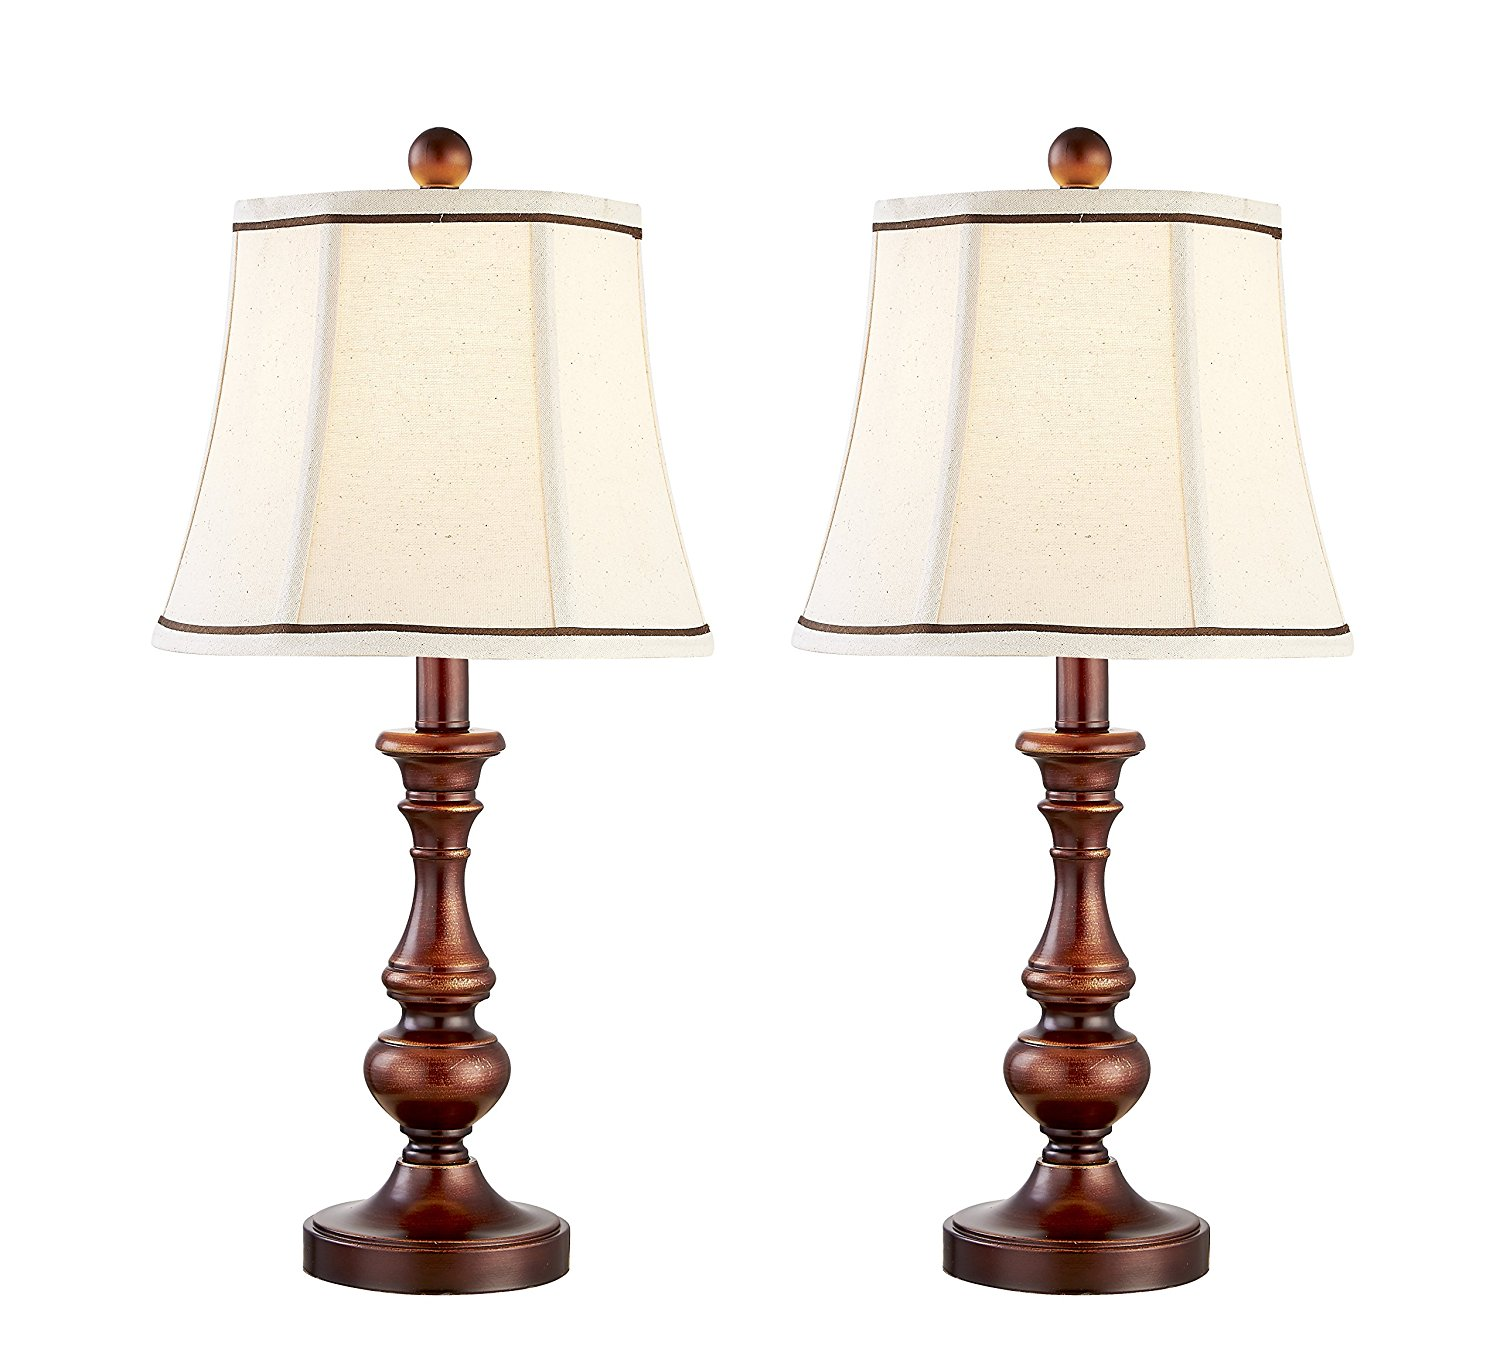 Get Quotations Table Lamps Dili Home Desk Decorative Lamp Vintage Style Set Of Two Bedroom Lights